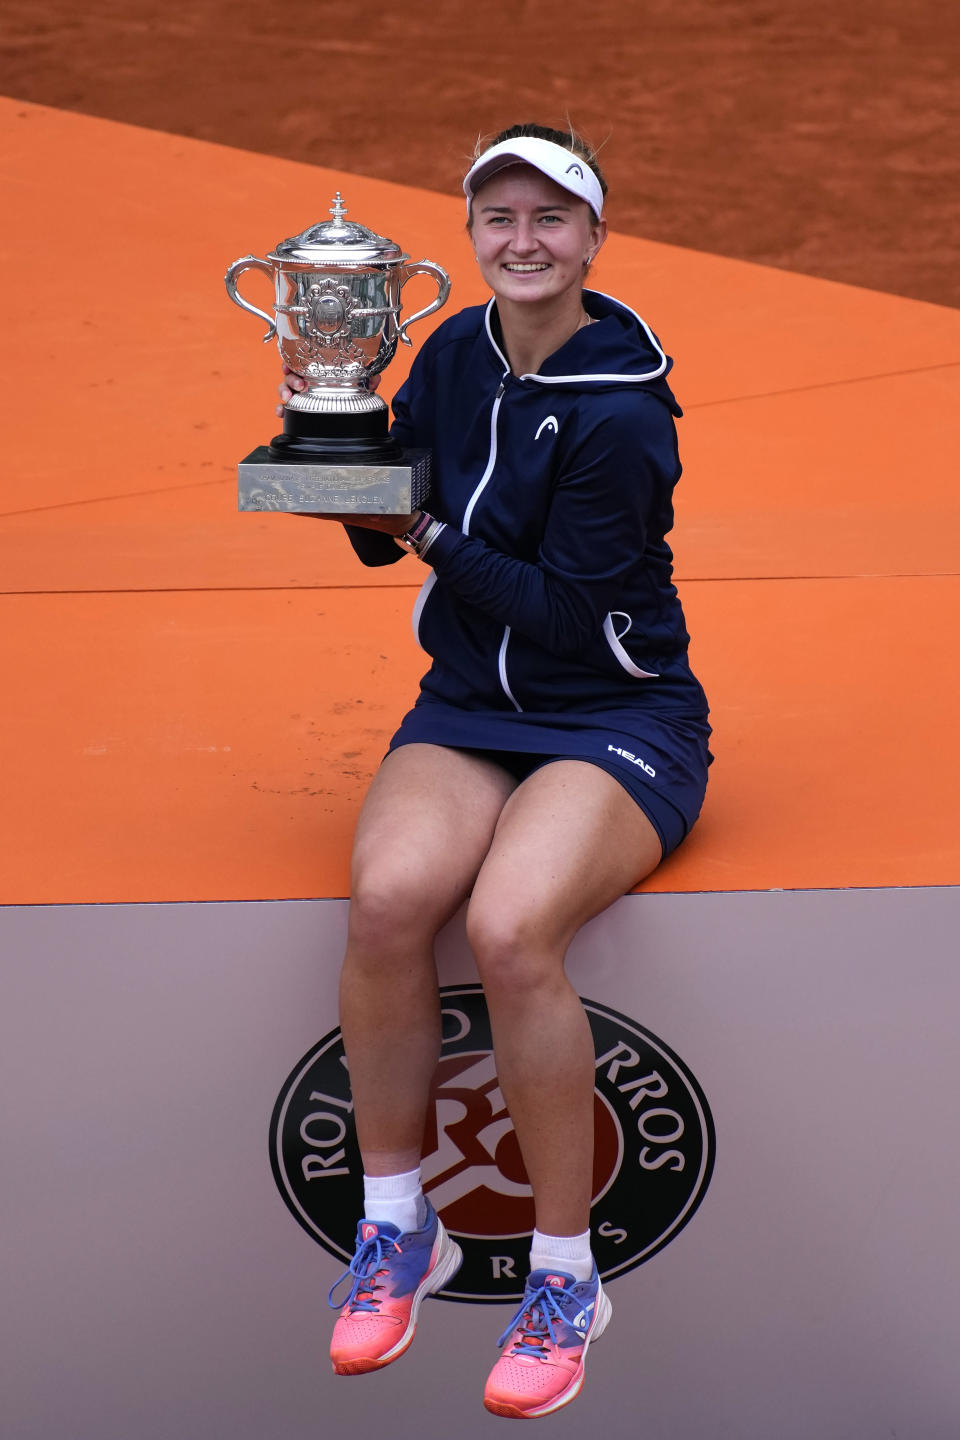 Czech Republic's Barbora Krejcikova poses with the cup after defeating Russia's Anastasia Pavlyuchenkova in their final match of the French Open tennis tournament at the Roland Garros stadium Saturday, June 12, 2021 in Paris. The unseeded Czech player defeated Anastasia Pavlyuchenkova 6-1, 2-6, 6-4 in the final. (AP Photo/Christophe Ena)